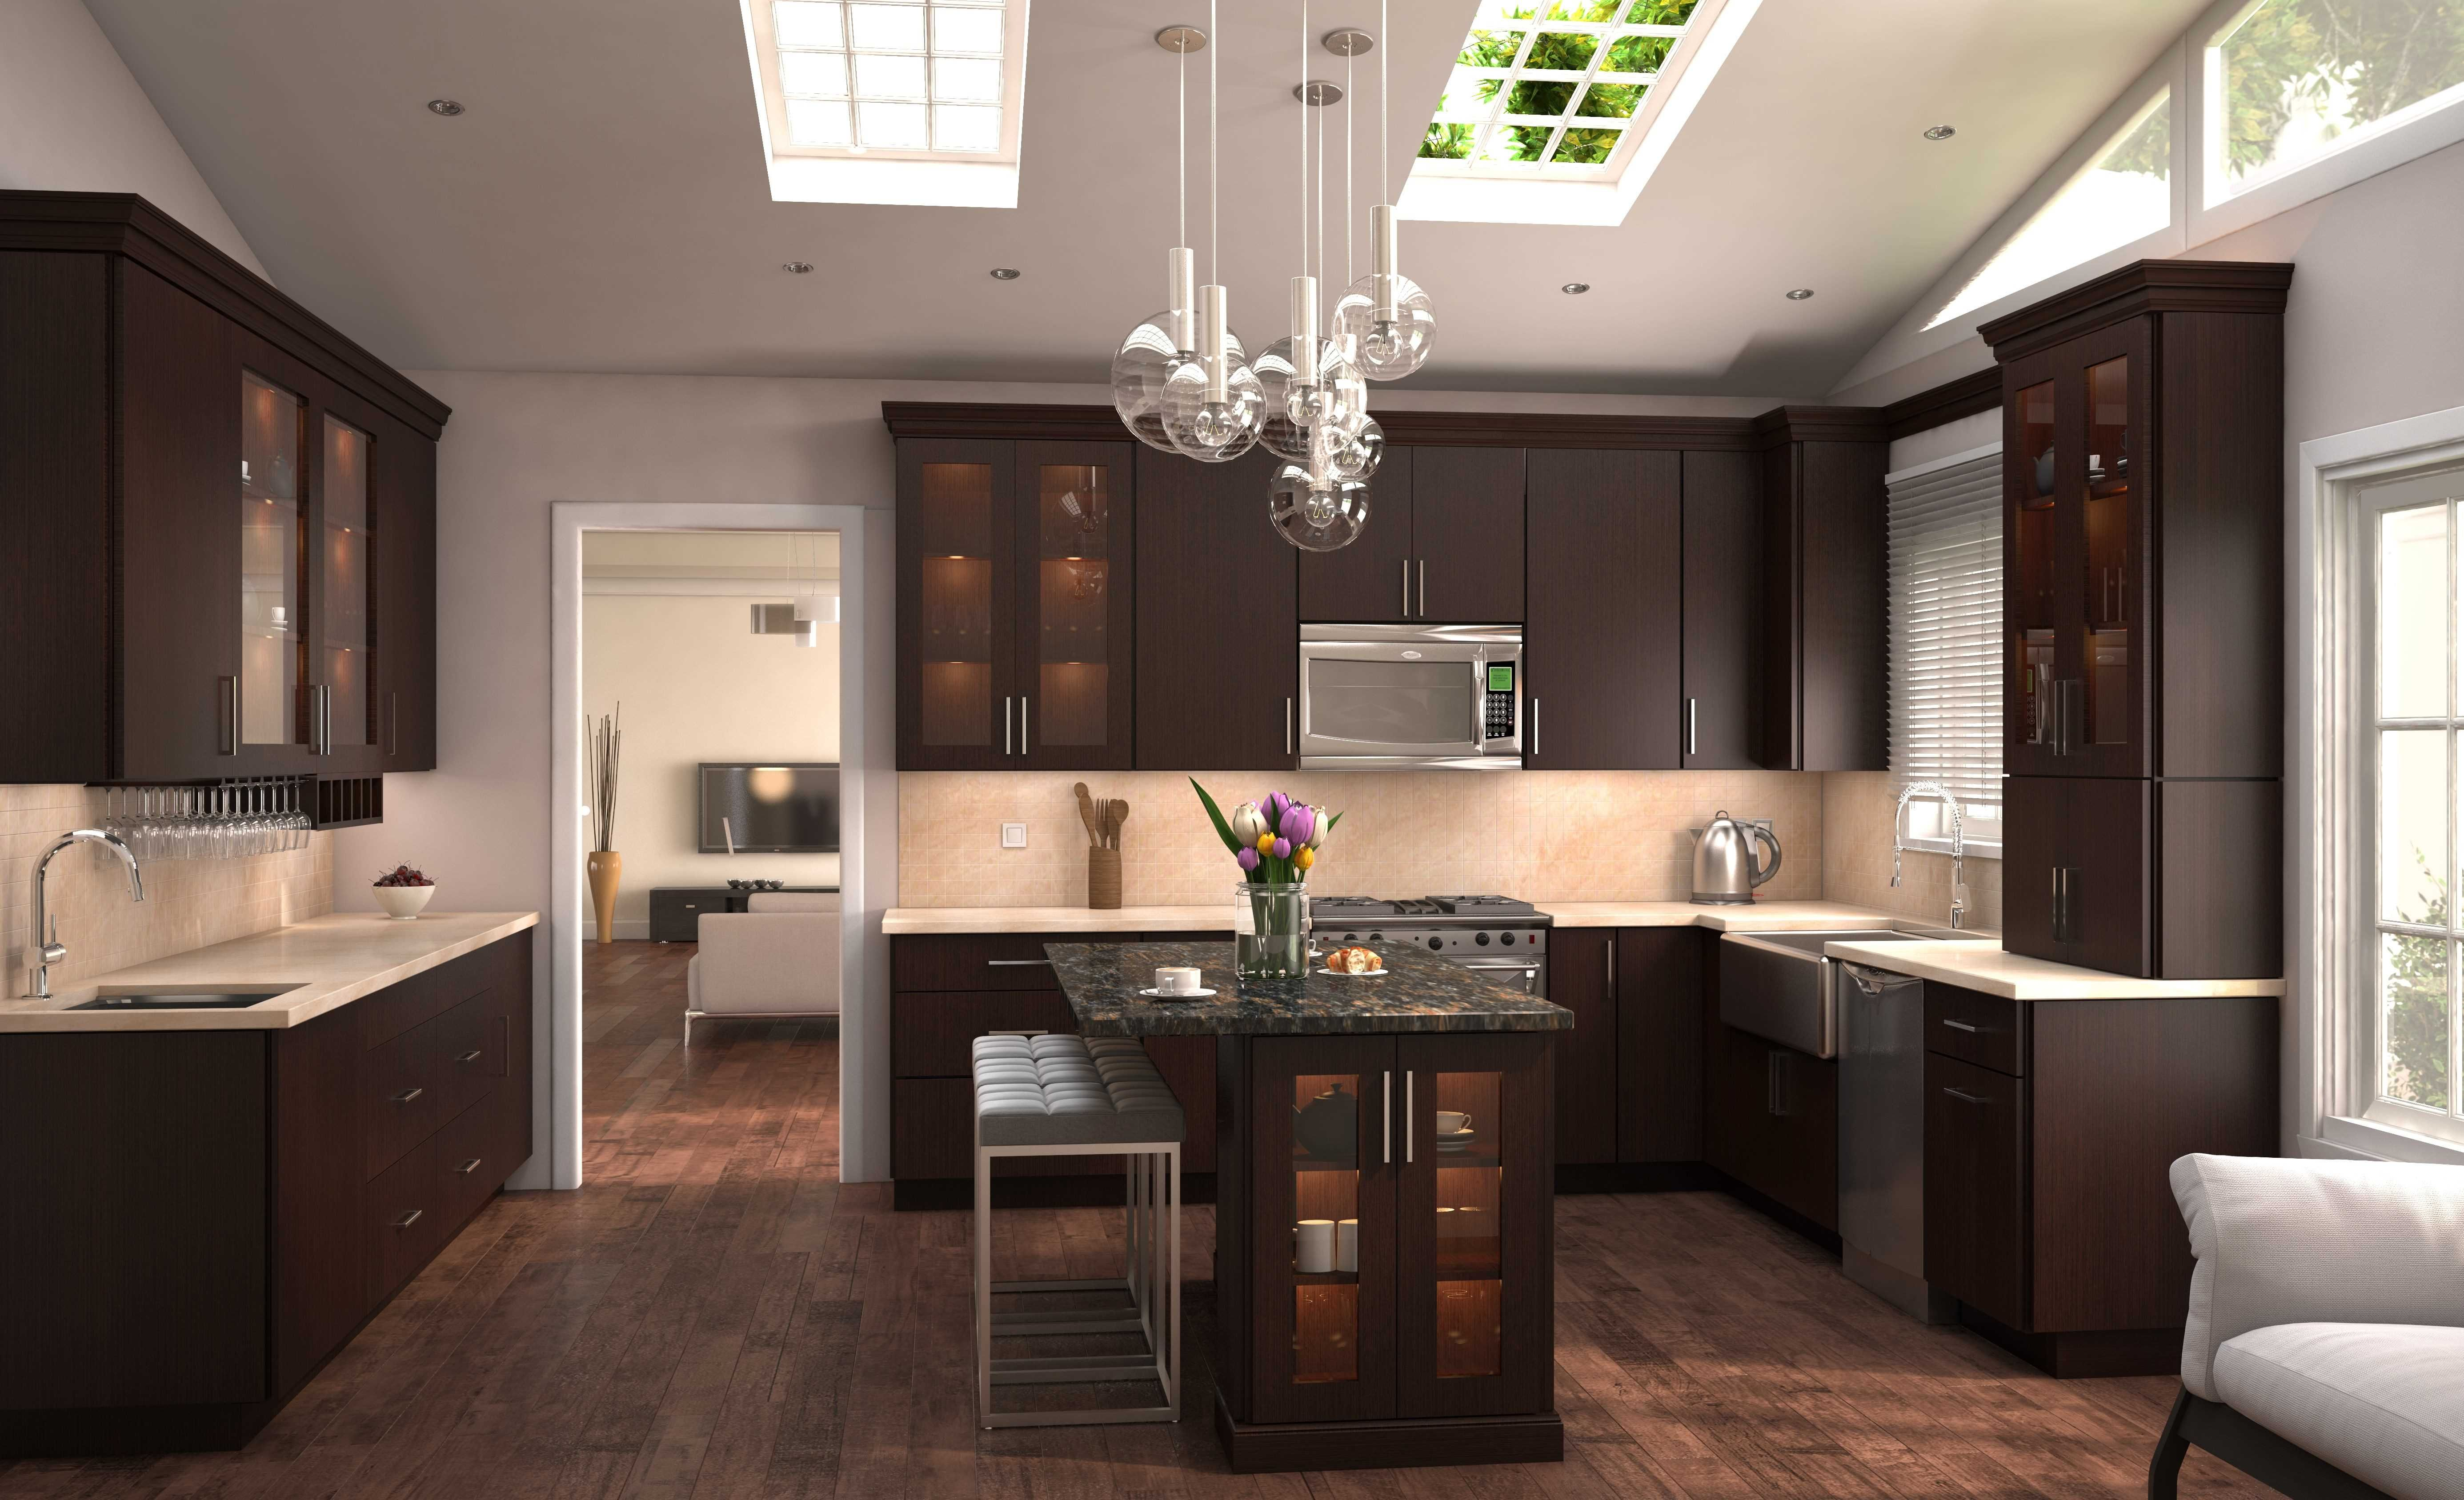 Pin By Ebenisterie Gmrs On Cubitac Cabinetry Kitchen Cabinets Kitchen And Bath Design Kitchen And Bath Showroom